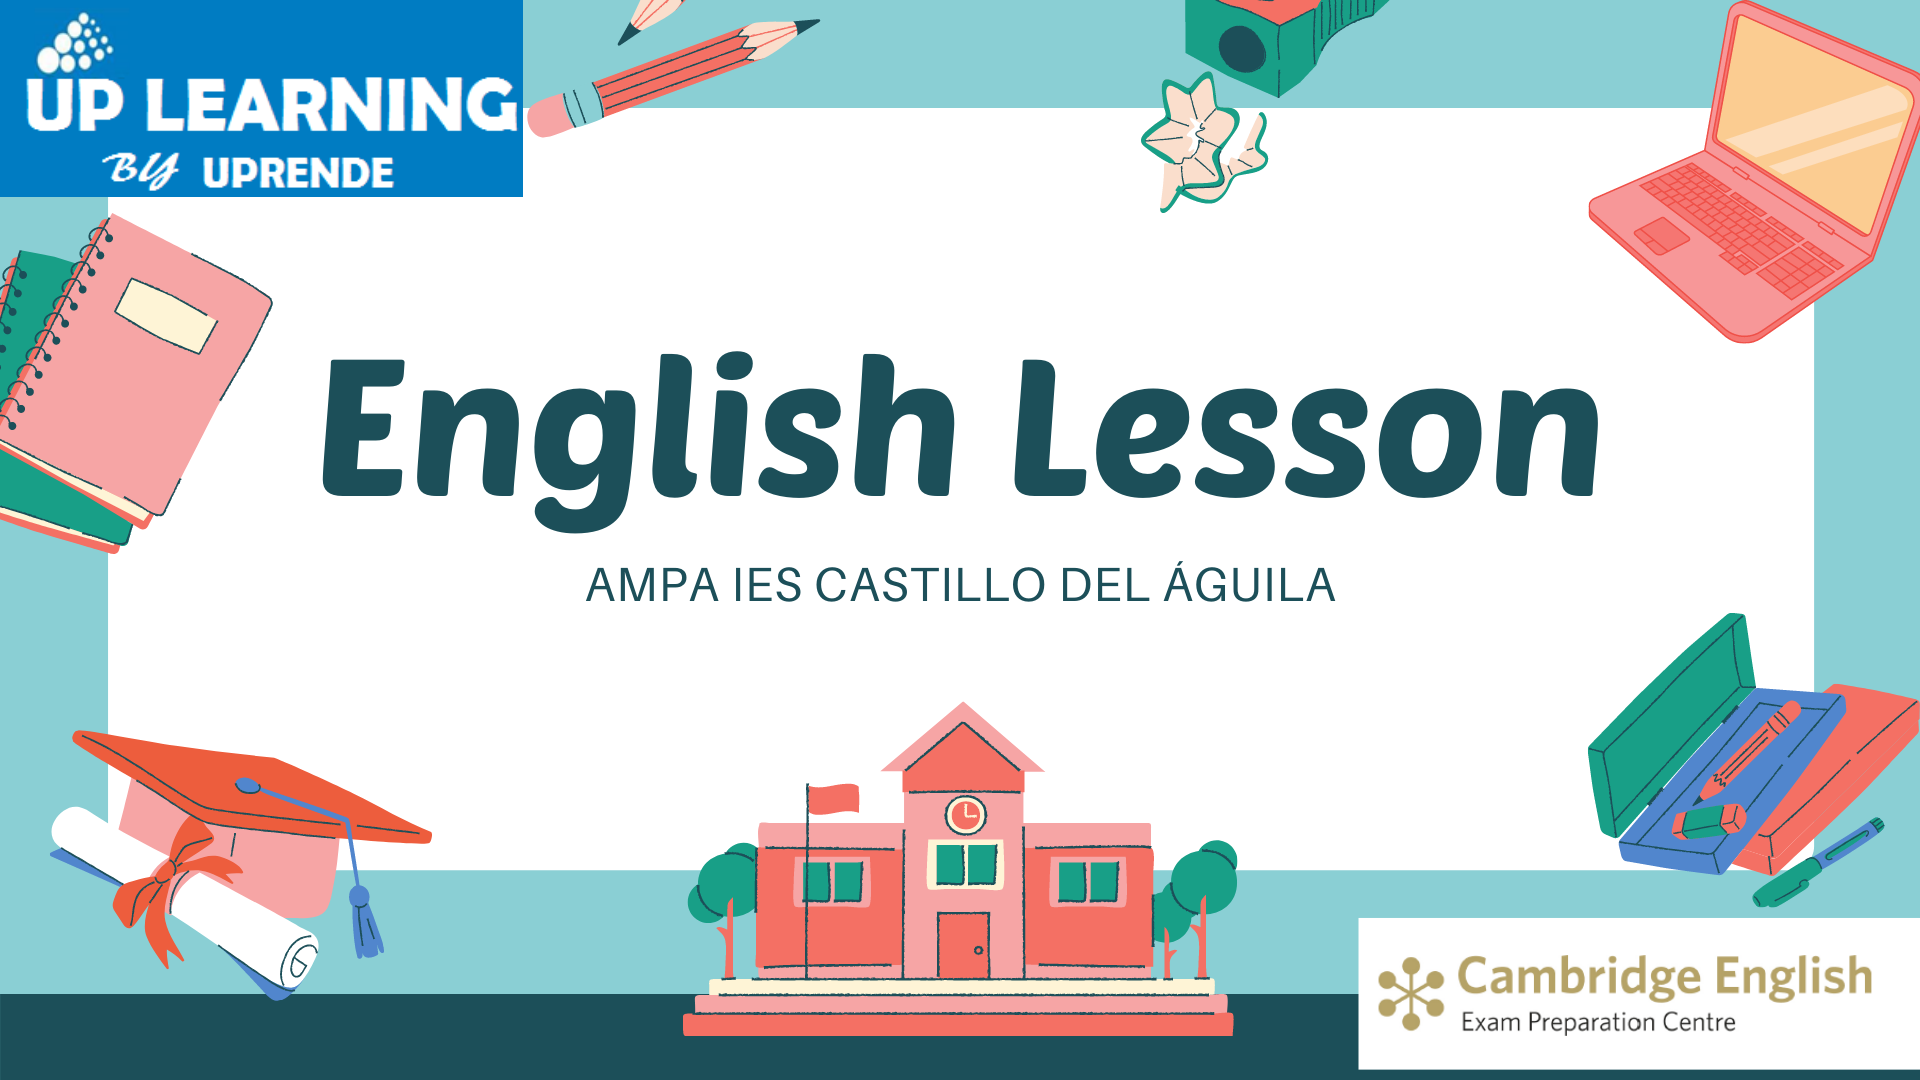 UPRENDE_ENGLISH_CLASS_AMPA_IES_CASTILLO_